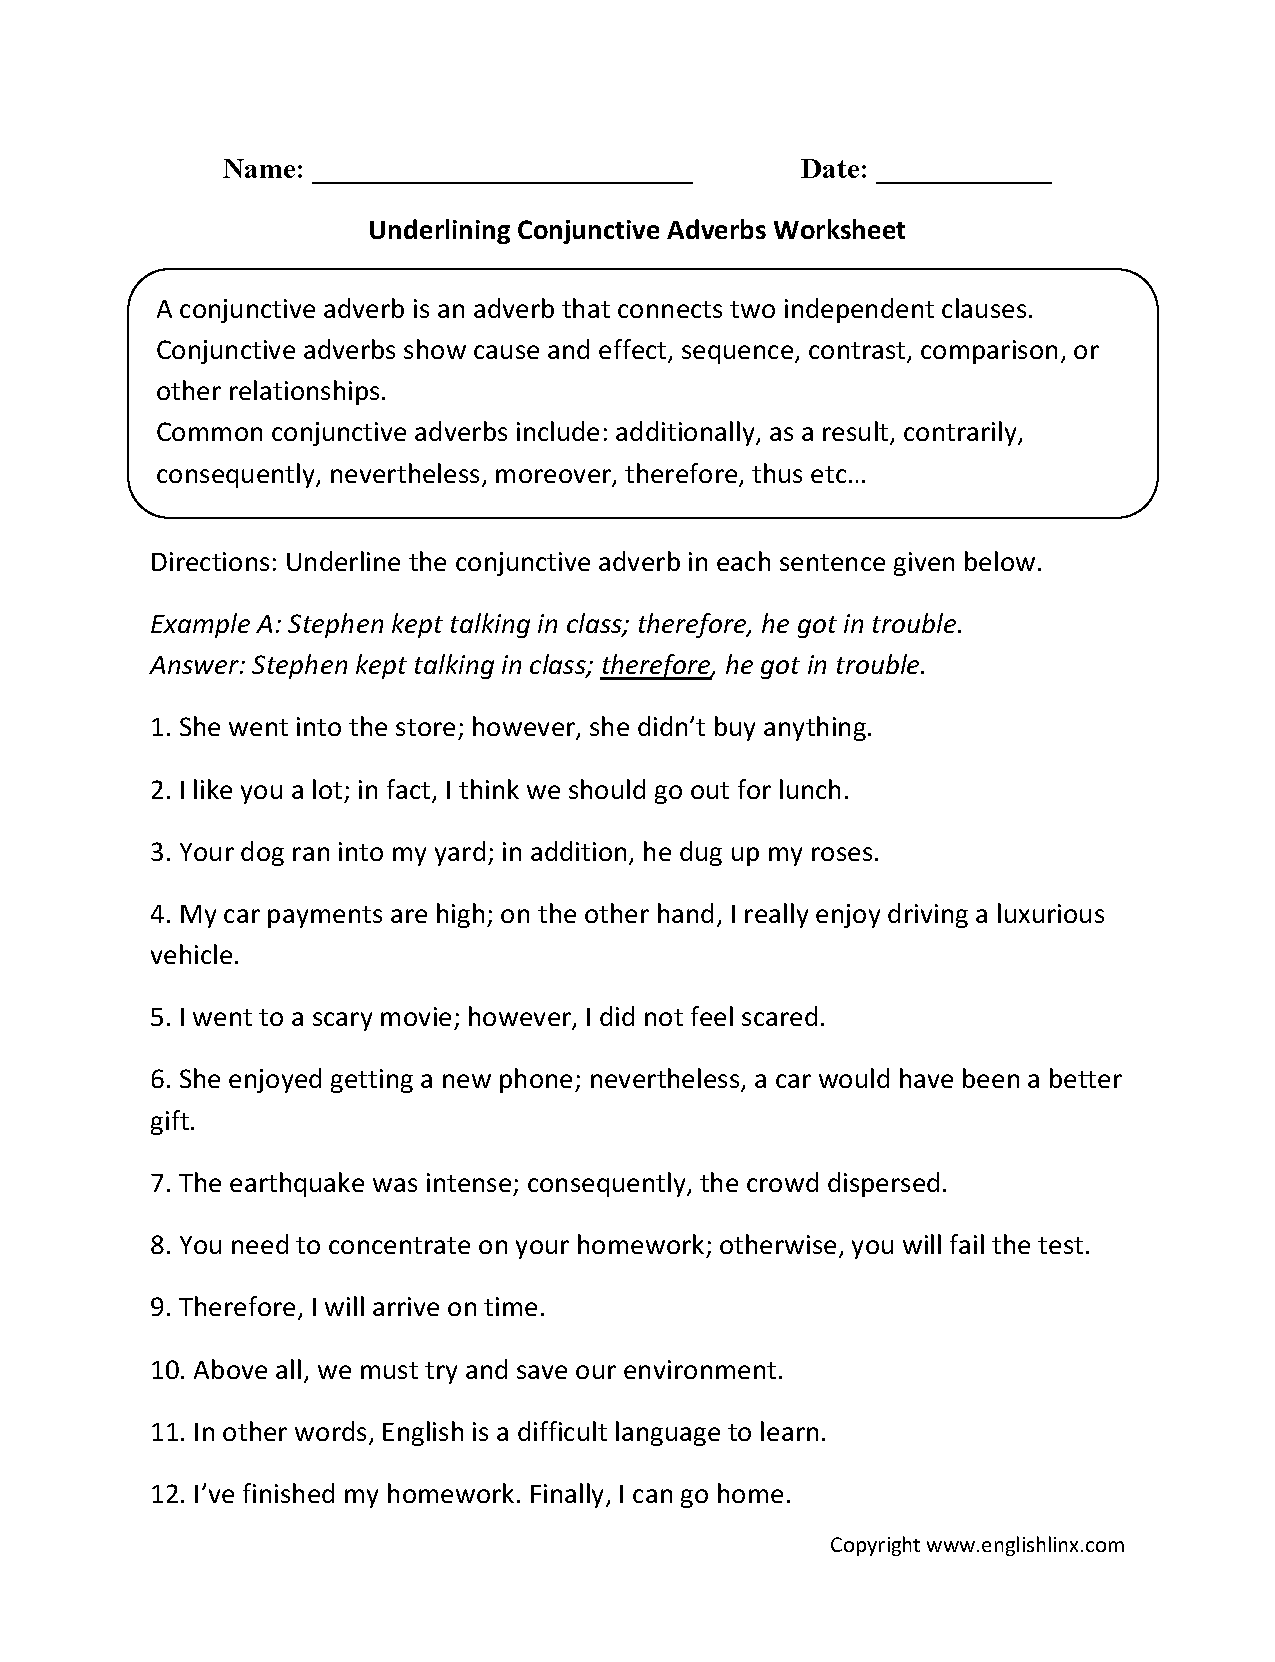 Weirdmailus  Winsome Englishlinxcom  Conjunctions Worksheets With Interesting Worksheet With Beautiful Precipitation Worksheet Also Identify Coins Worksheet In Addition Free Printable Life Skills Worksheets For Adults And Function Of The Organelles Worksheet As Well As Scientific Variables Worksheet Additionally Phrases And Clauses Worksheet From Englishlinxcom With Weirdmailus  Interesting Englishlinxcom  Conjunctions Worksheets With Beautiful Worksheet And Winsome Precipitation Worksheet Also Identify Coins Worksheet In Addition Free Printable Life Skills Worksheets For Adults From Englishlinxcom